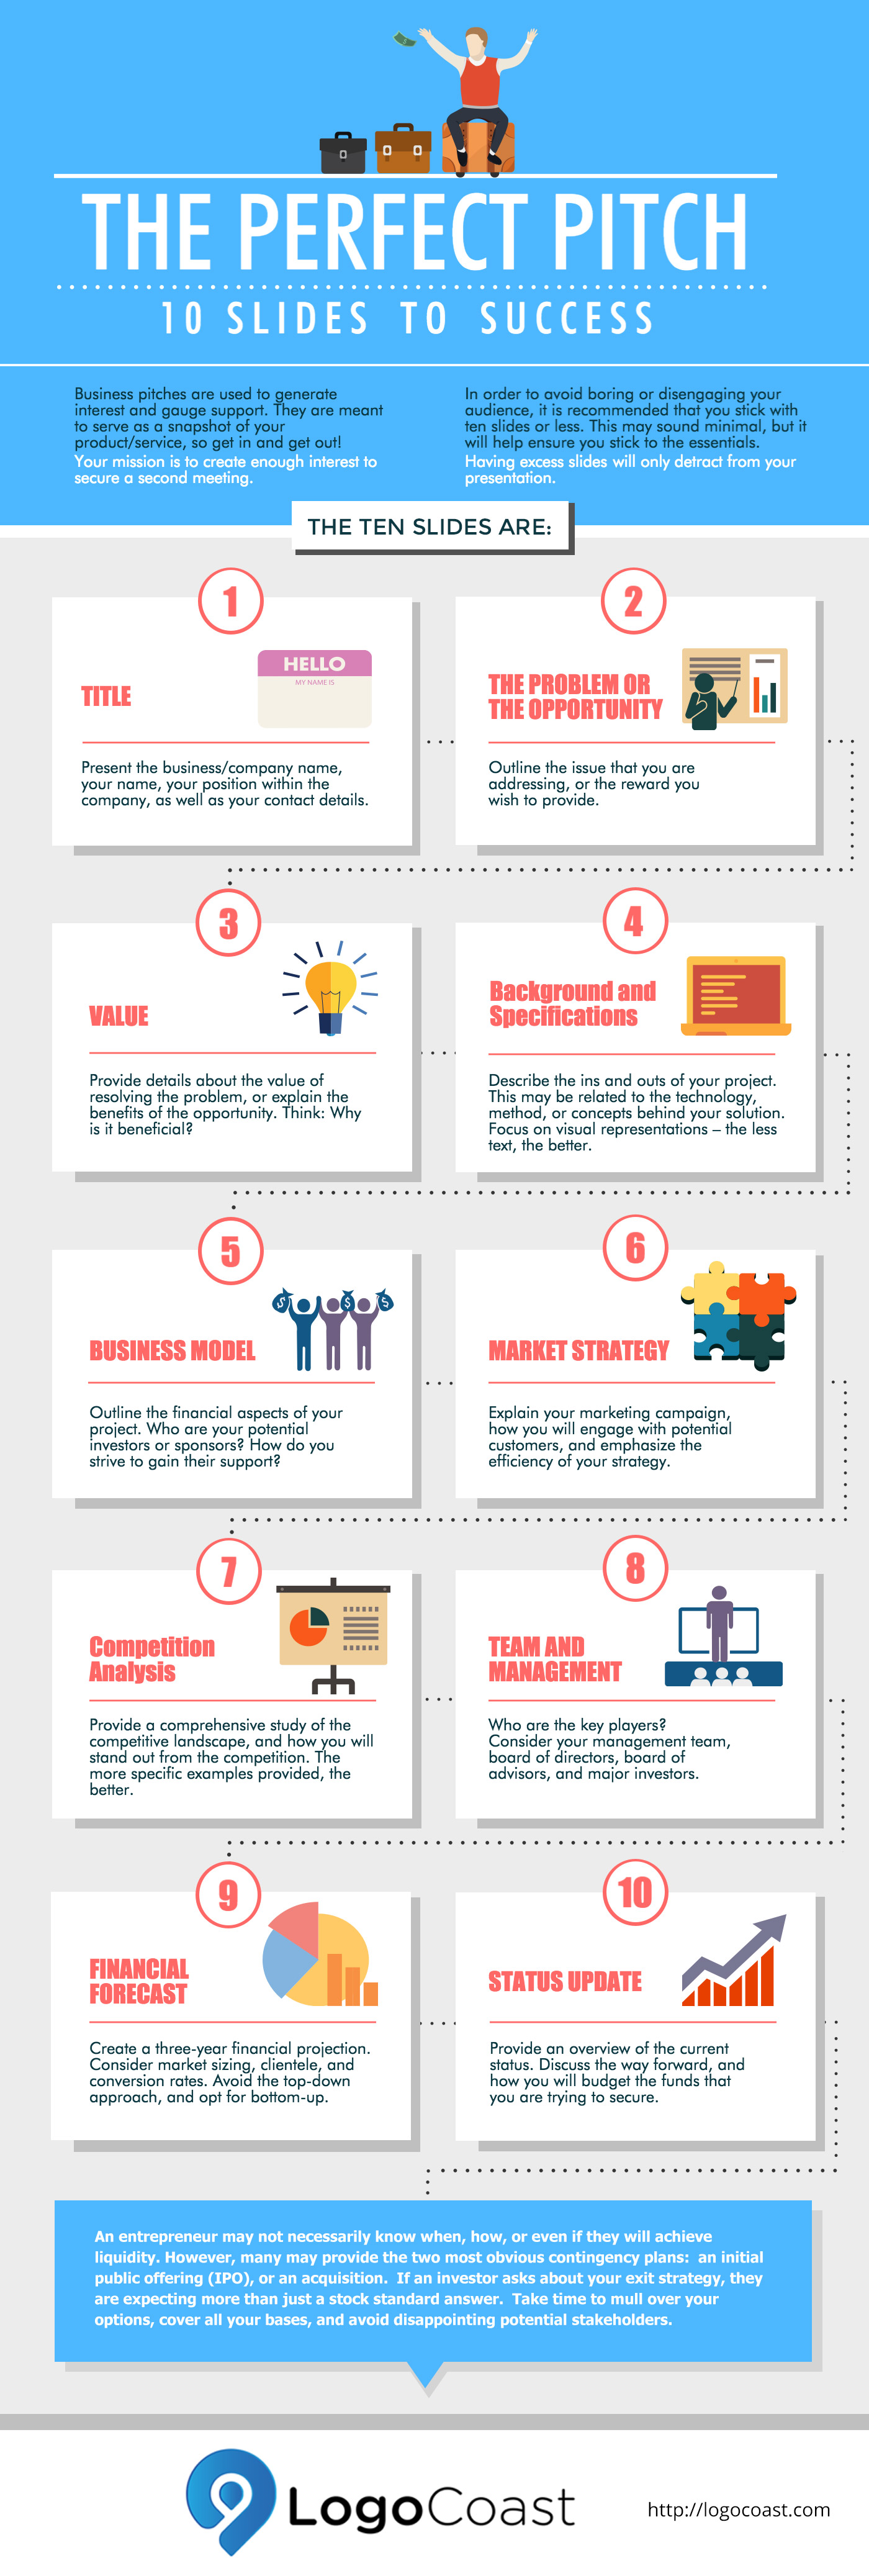 Infographic for The Perfect Pitch - 10 Slides to Success